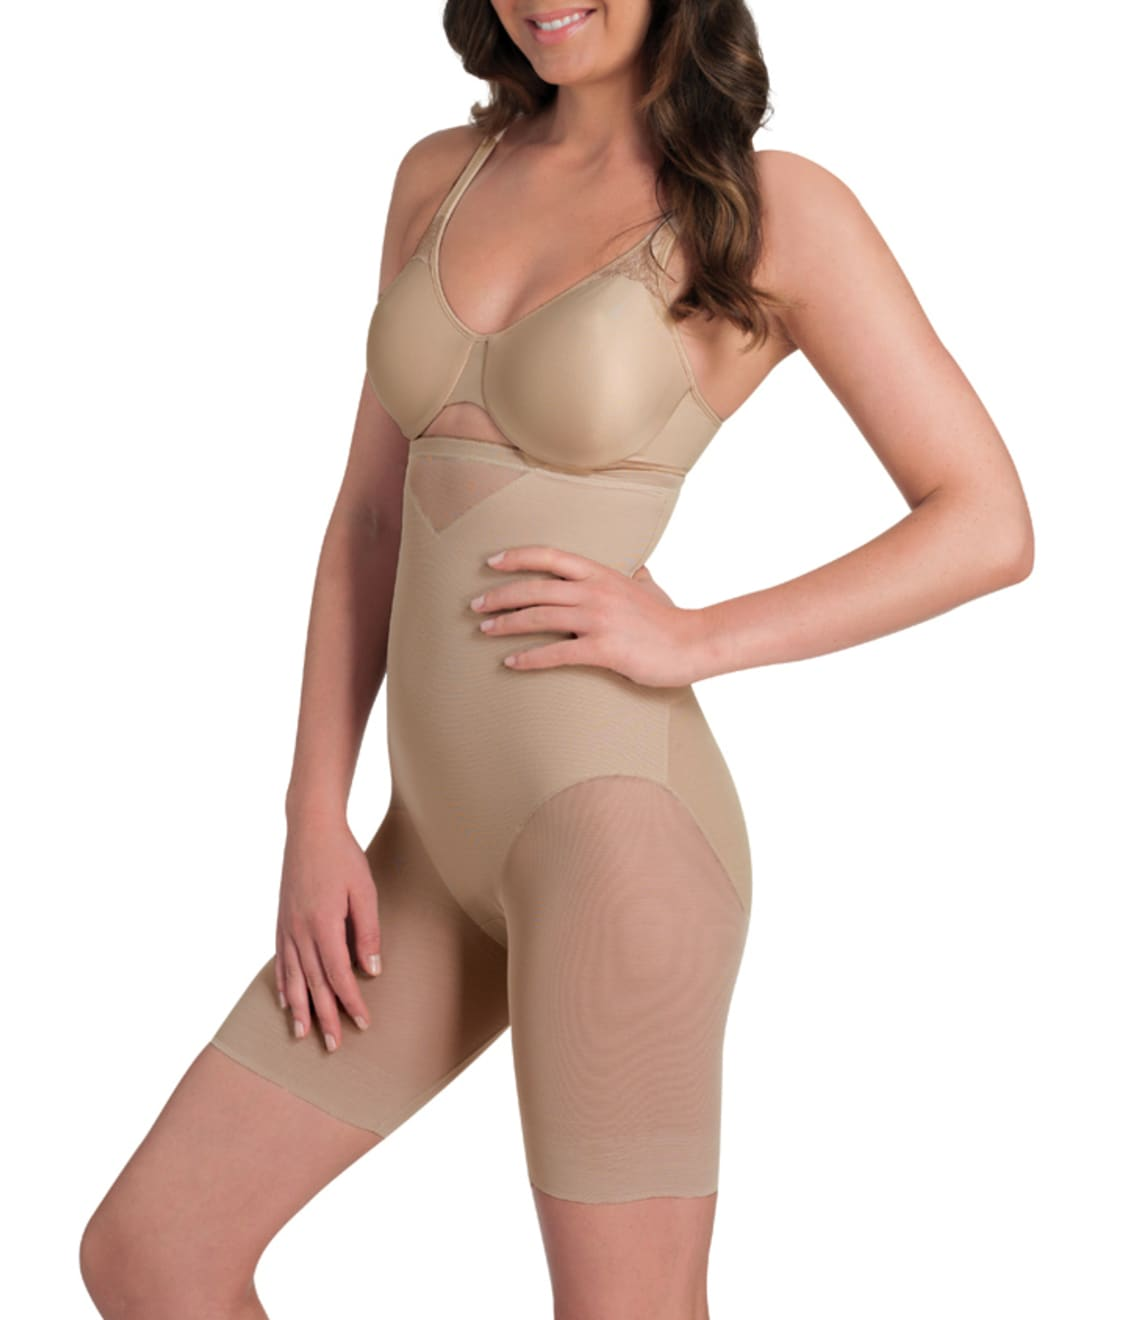 ed23ffa849d53 Miraclesuit Sexy Sheer Extra Firm Control High-Waist Thigh Slimmer ...